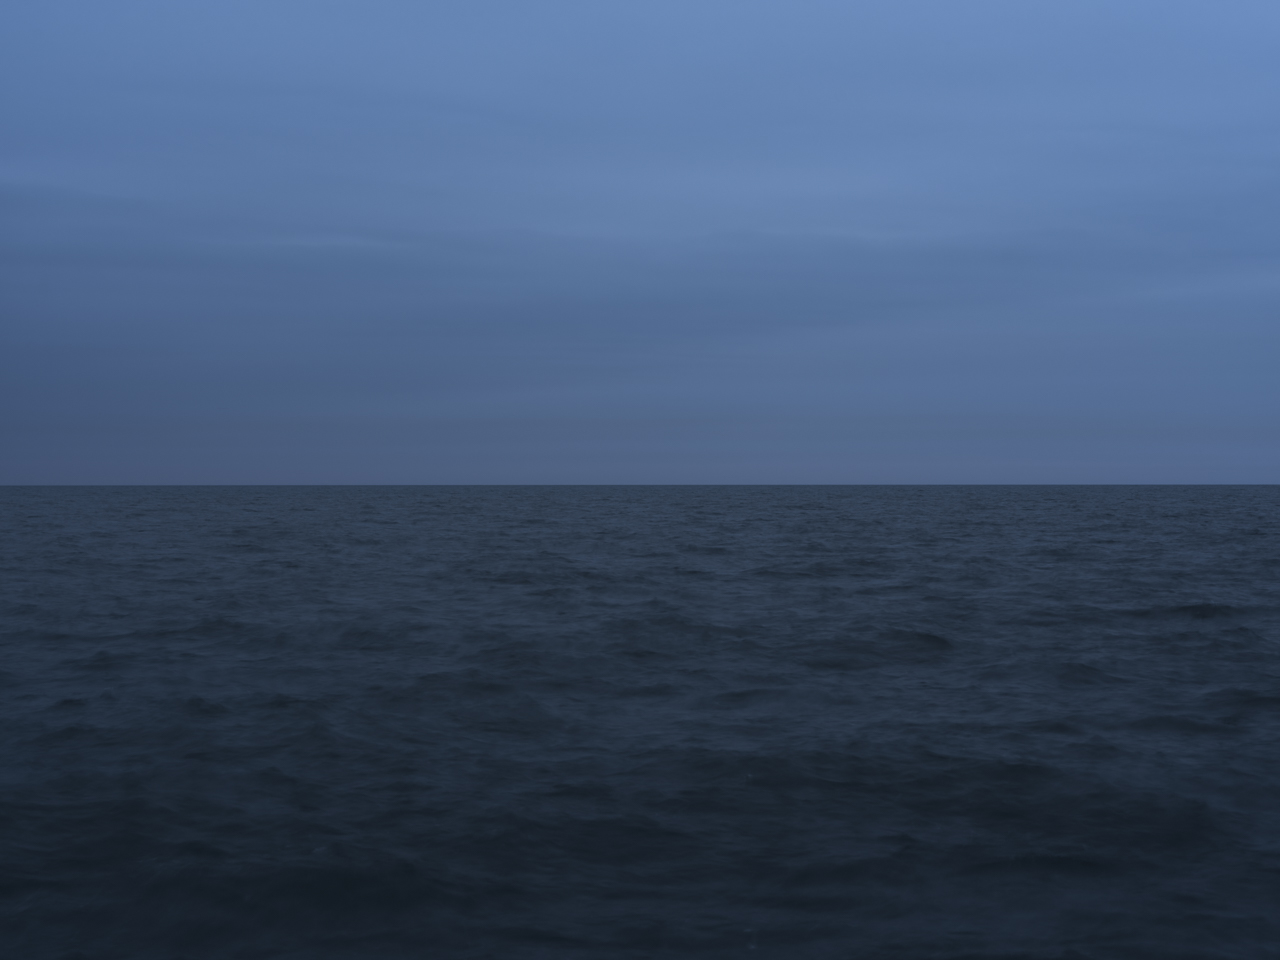 dark skies and an early morning, deeply blue and meditative